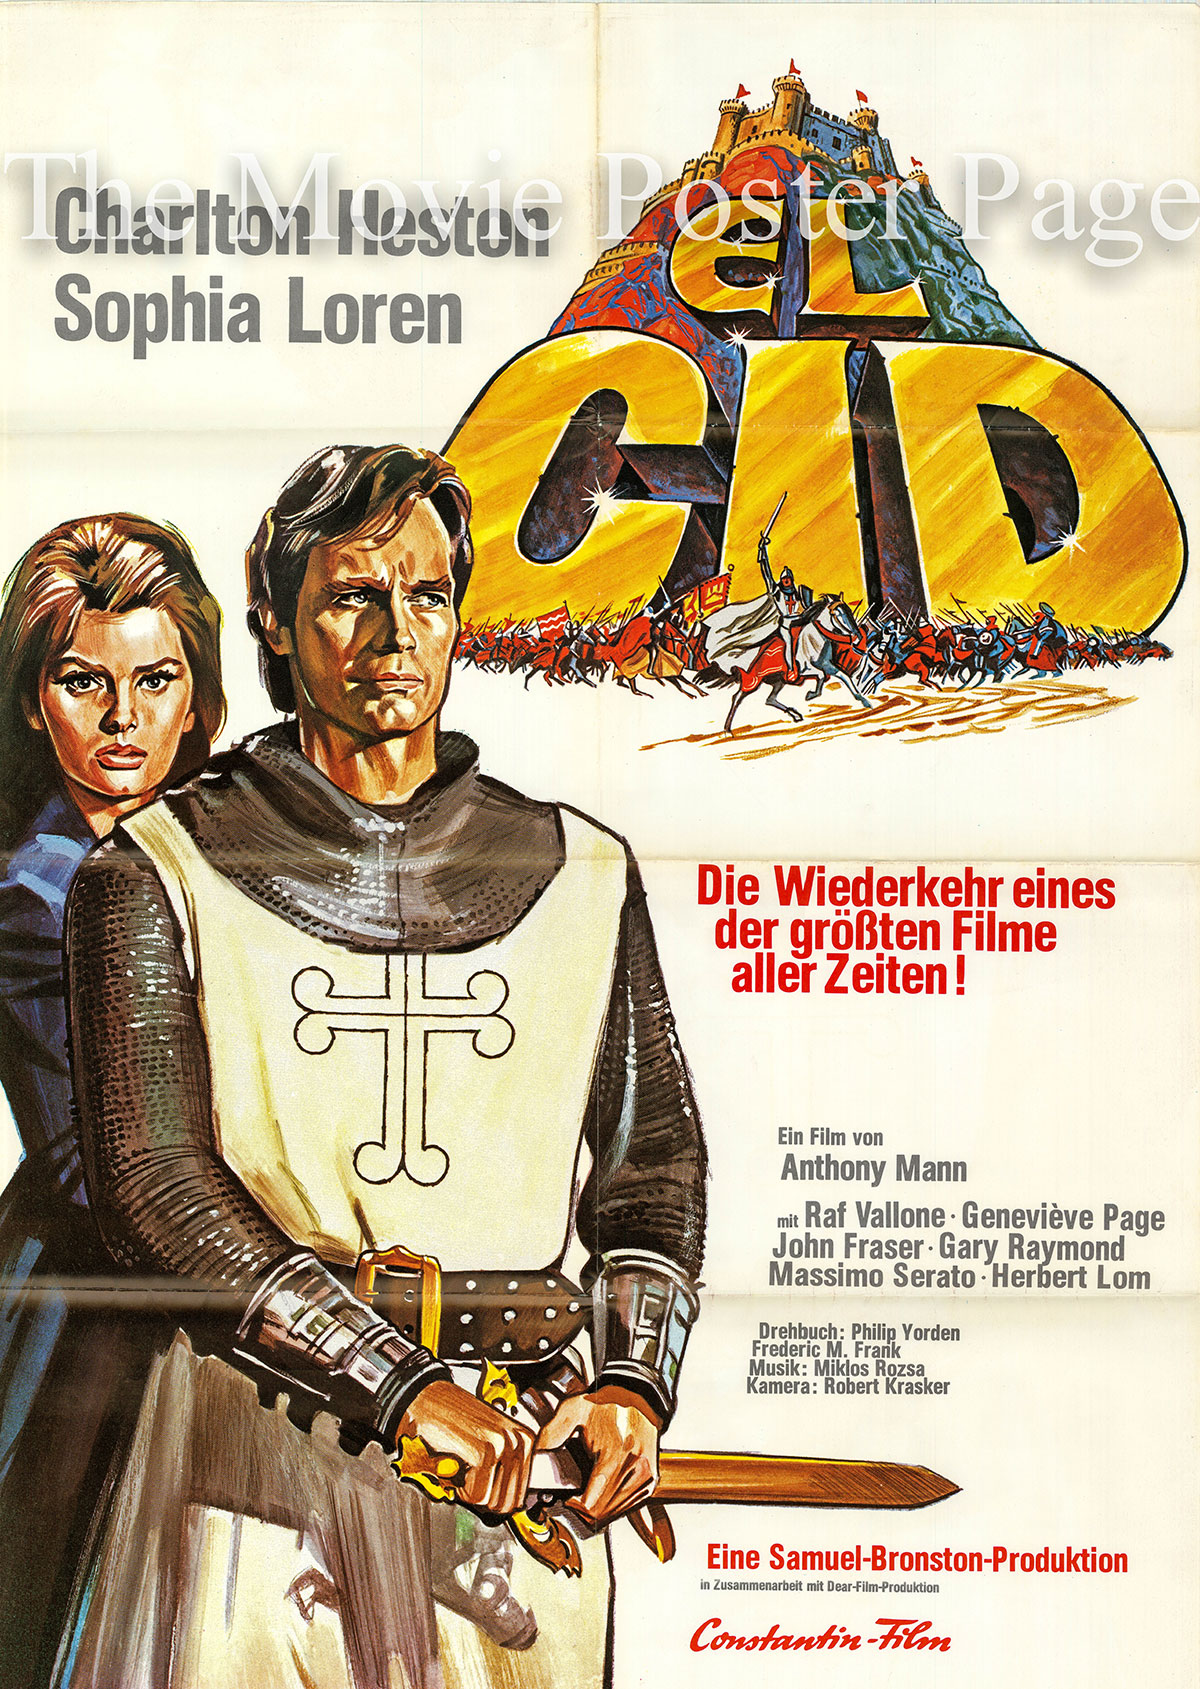 Pictured is a German promotional poster for the 1961 Anthony Mann film El Cid starring Charlton Heston and Sophia Loren.